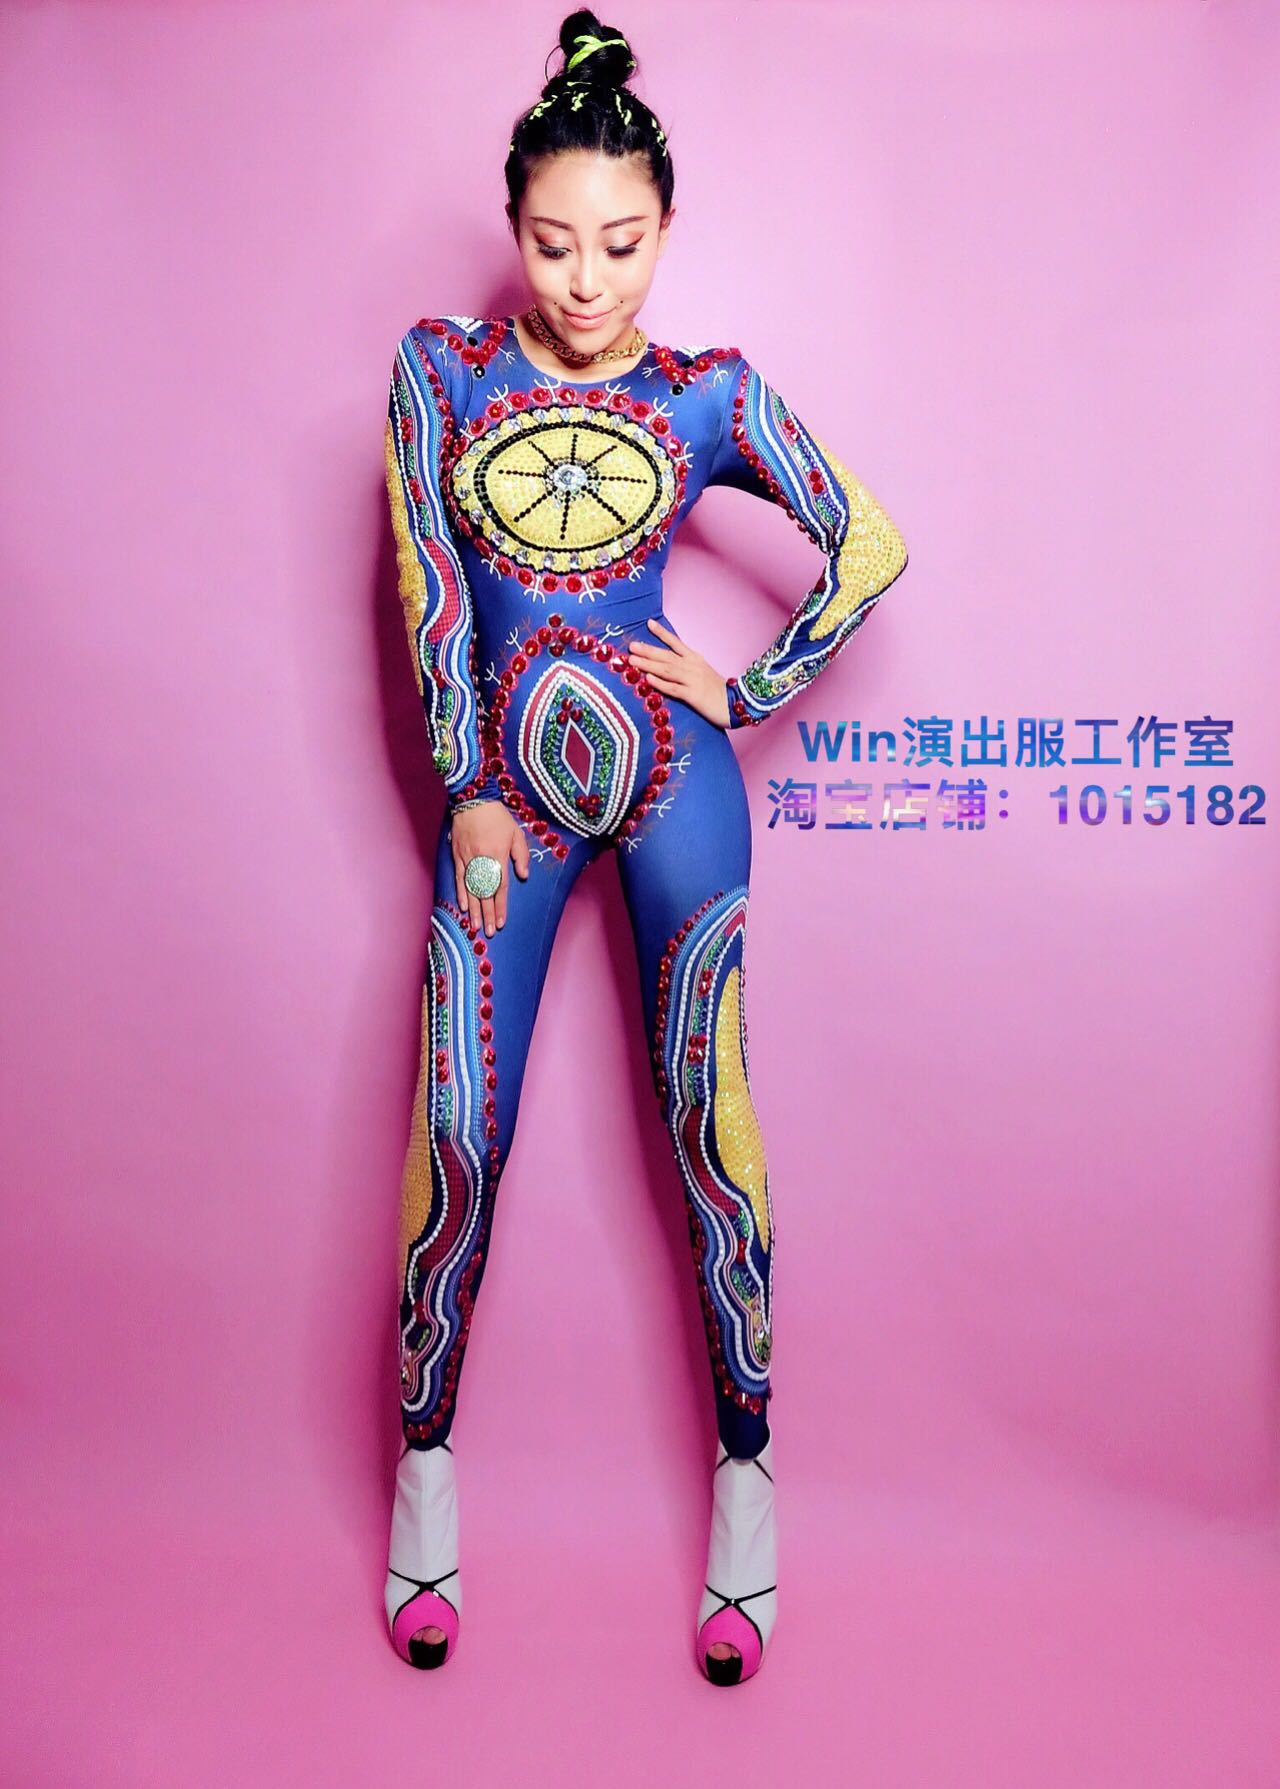 cc21292bd4db Best Seller diy customized full rhinestone high quality performance  clothing singer dancer dj DS jumpsuit costumes for women original brand For  Sale at ...